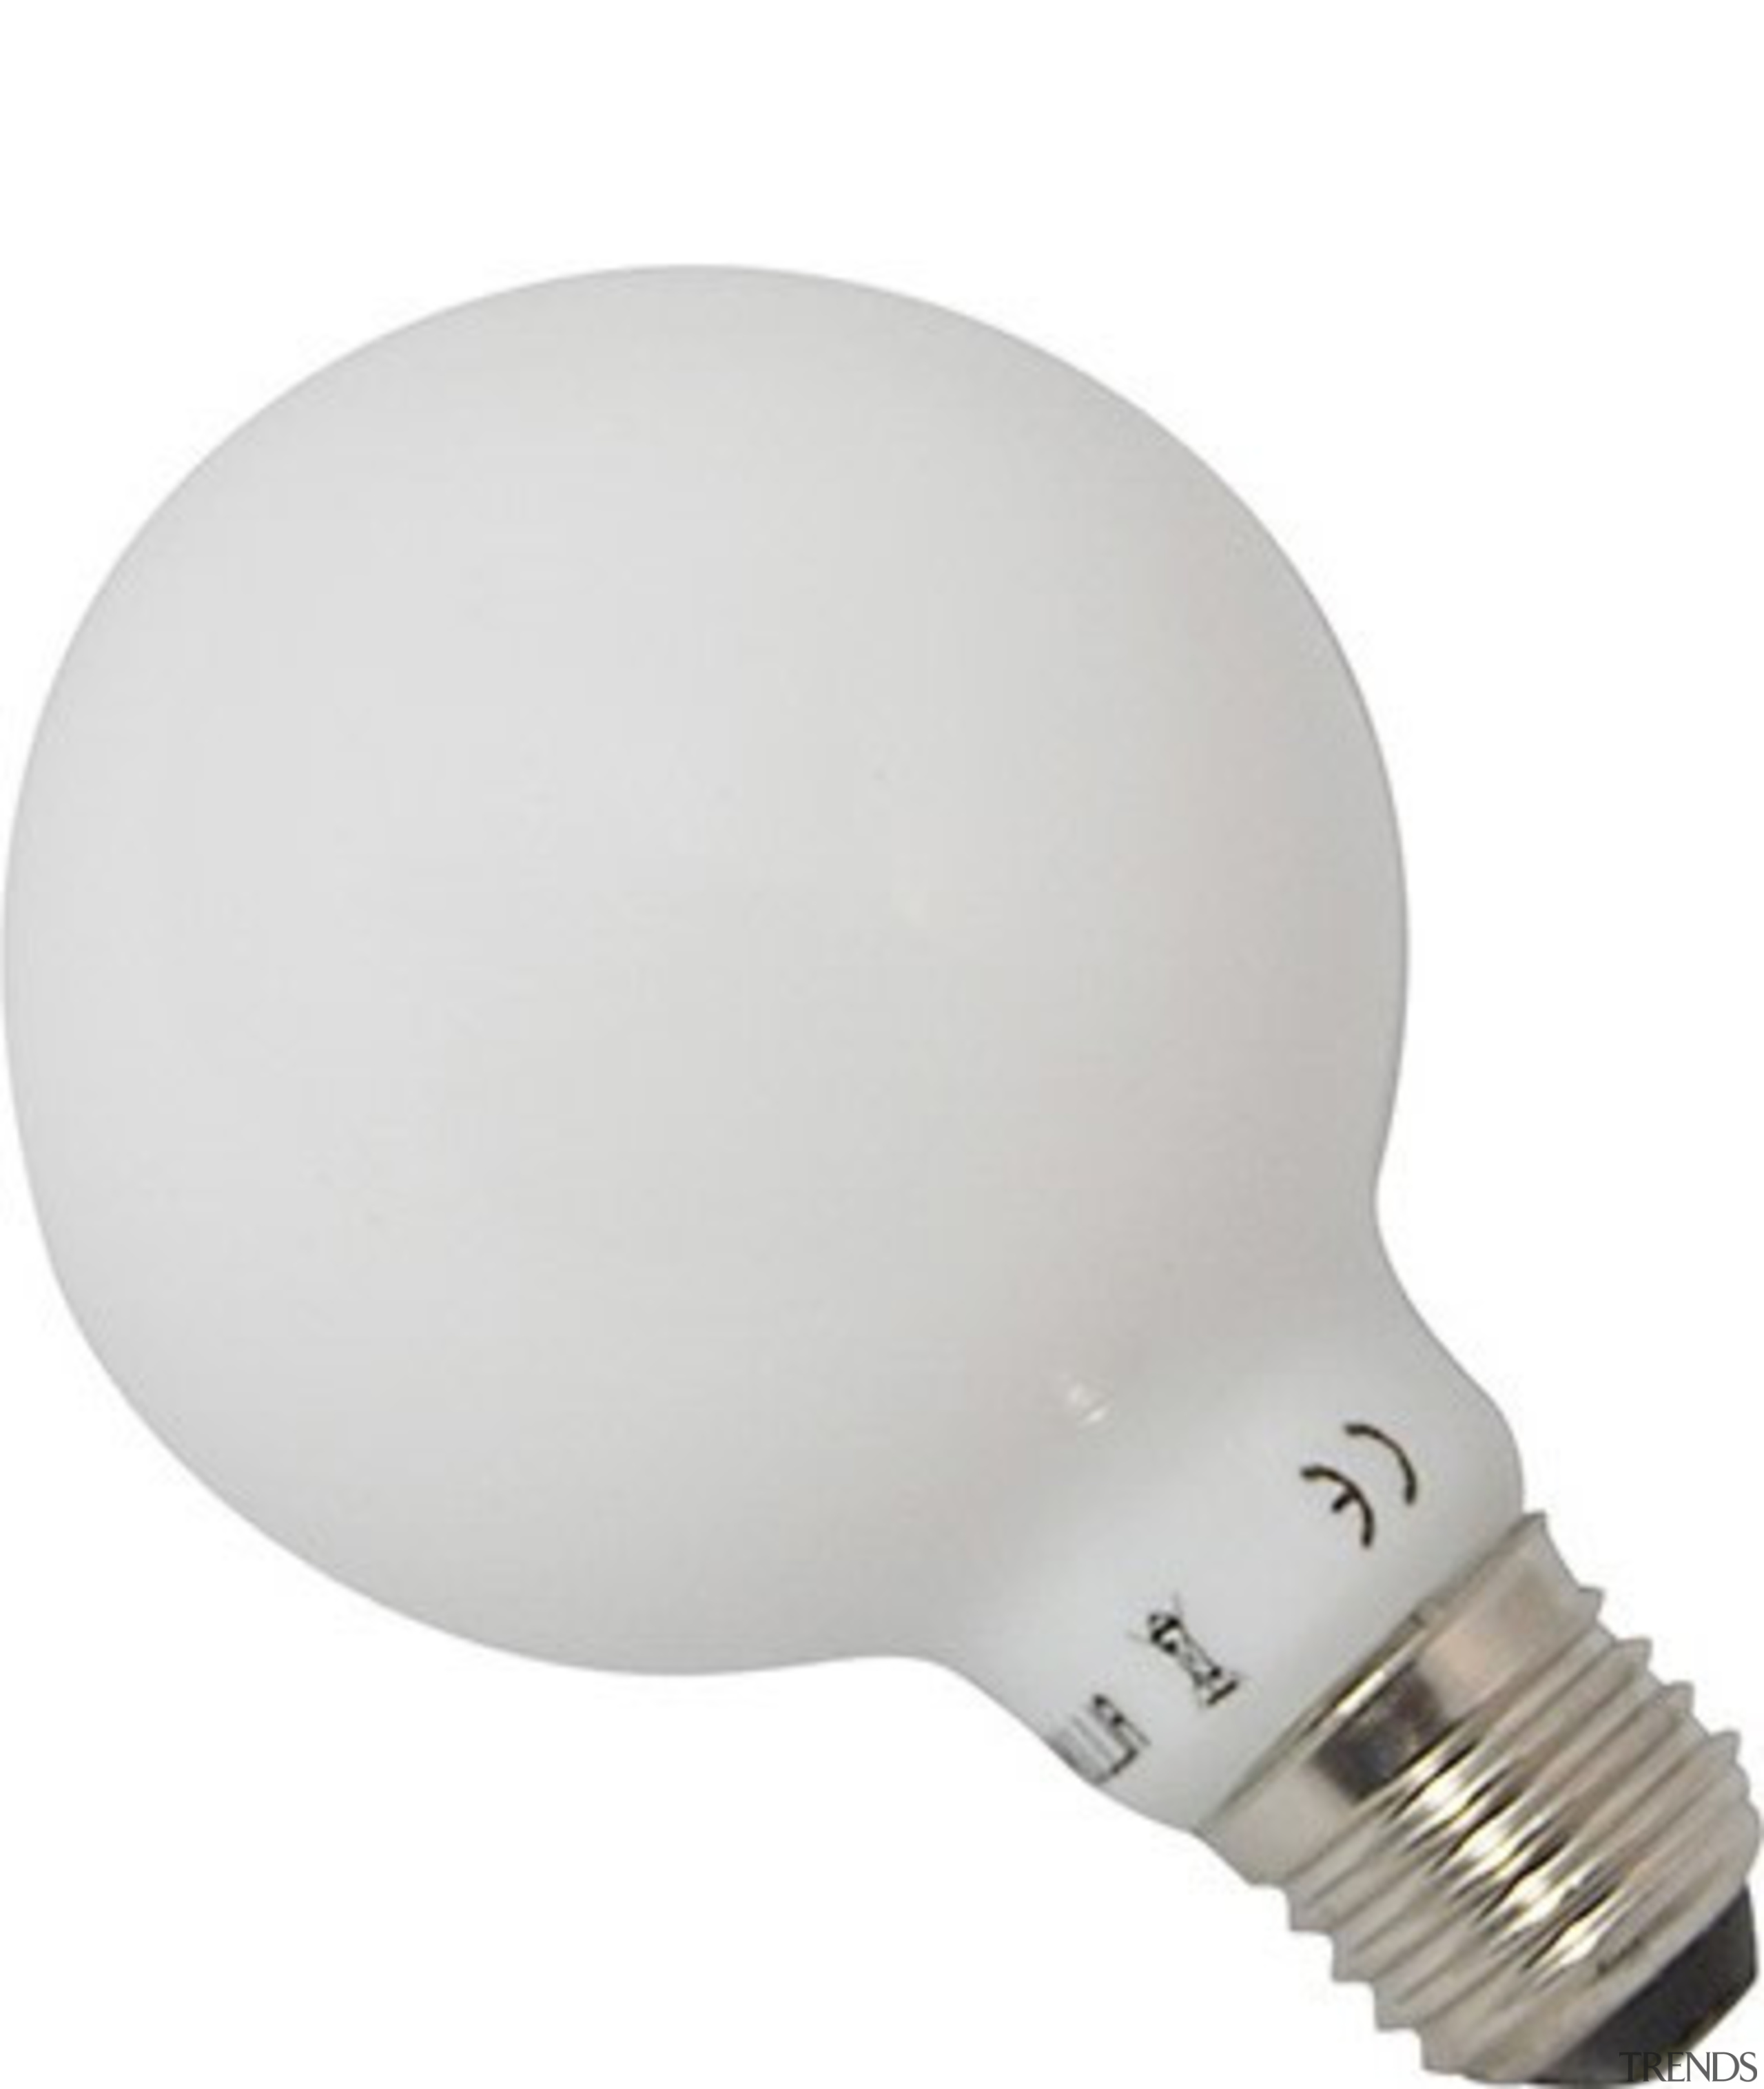 Features8WLuminous Flux: 700lmGlobe Shape (G80)E27Energy Rated A+CRI ˃80Not lighting, product design, white